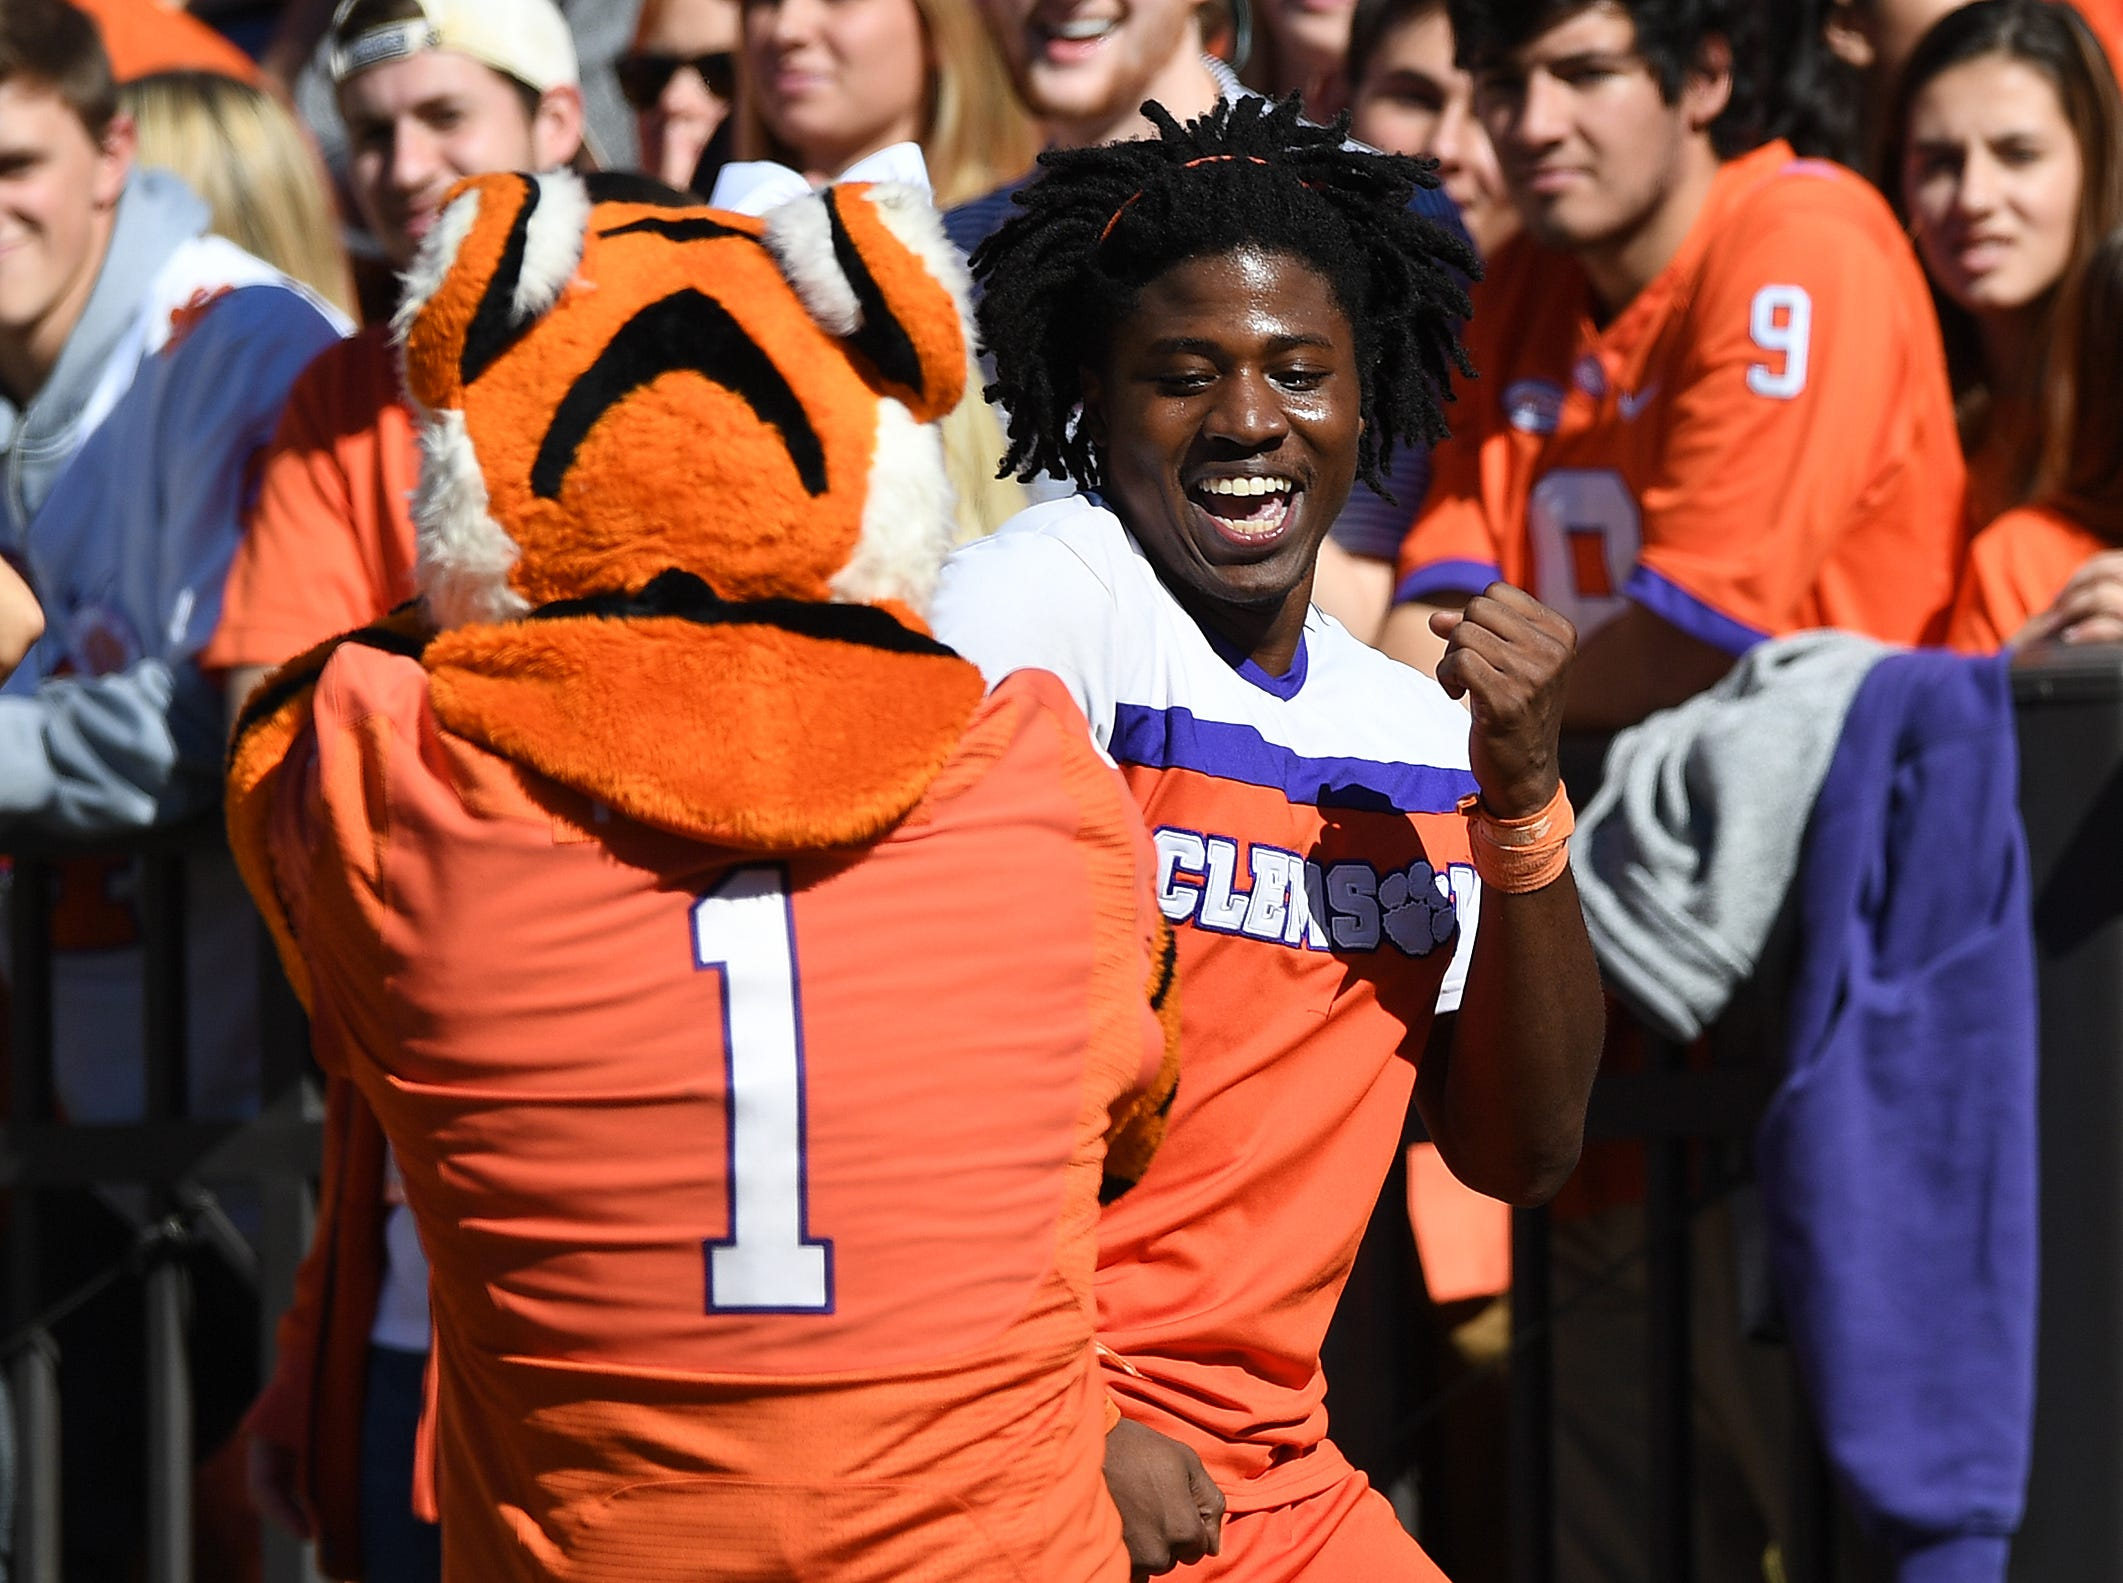 The Clemson Tiger dances with a cheerleader during the 2nd quarter Saturday, November 3, 2018 at Clemson's Memorial Stadium.